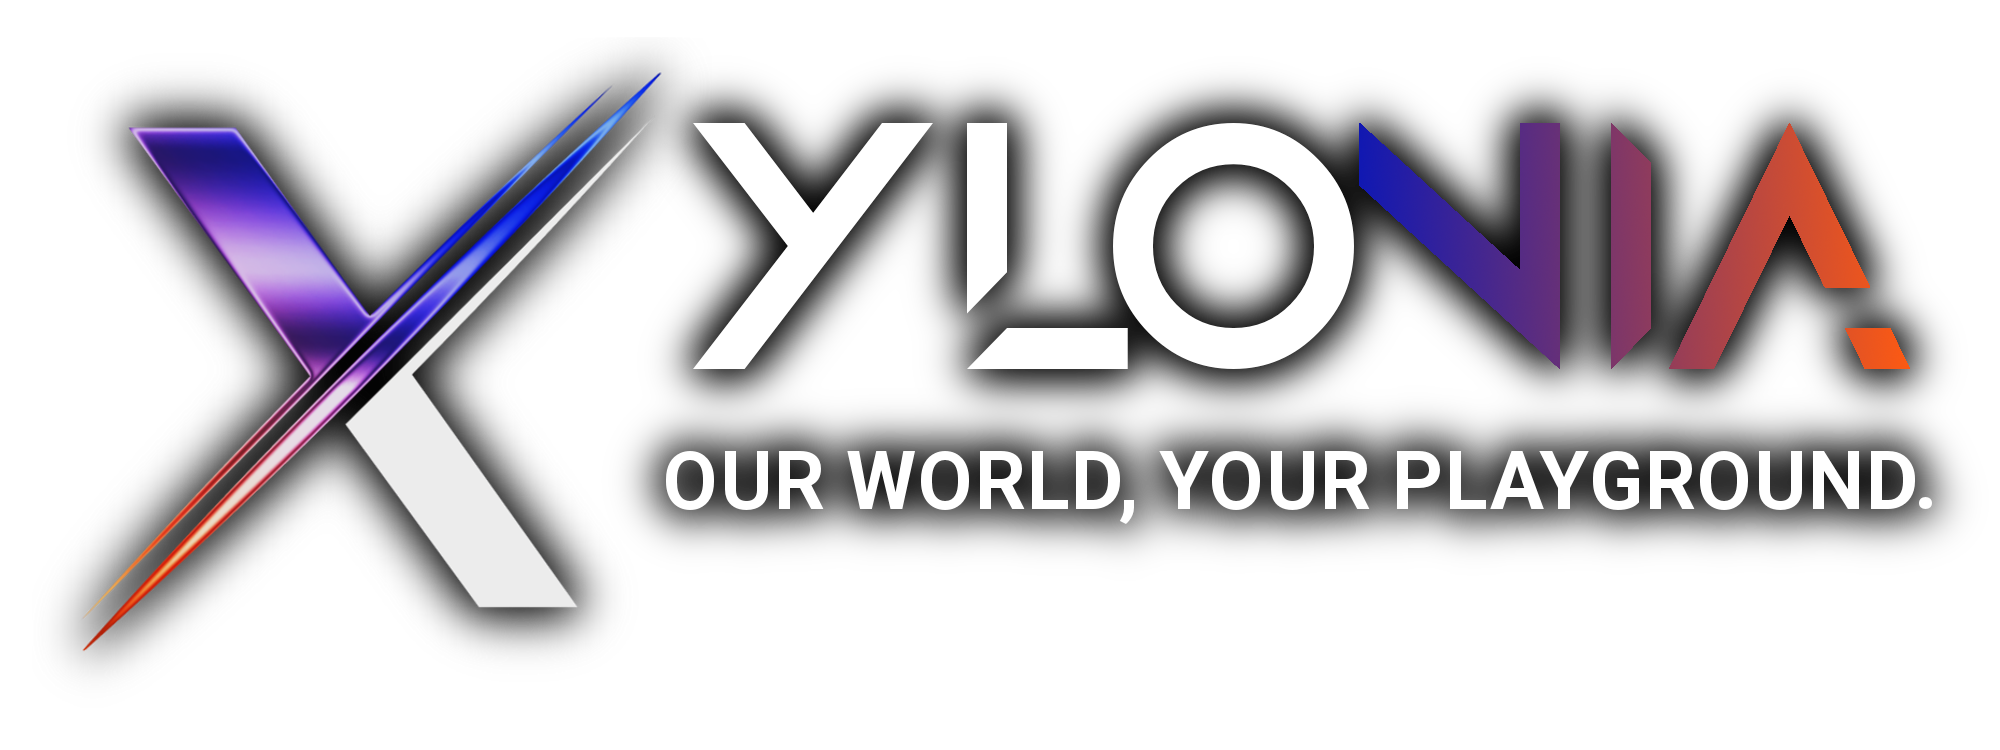 Xylonia - Gaming Community